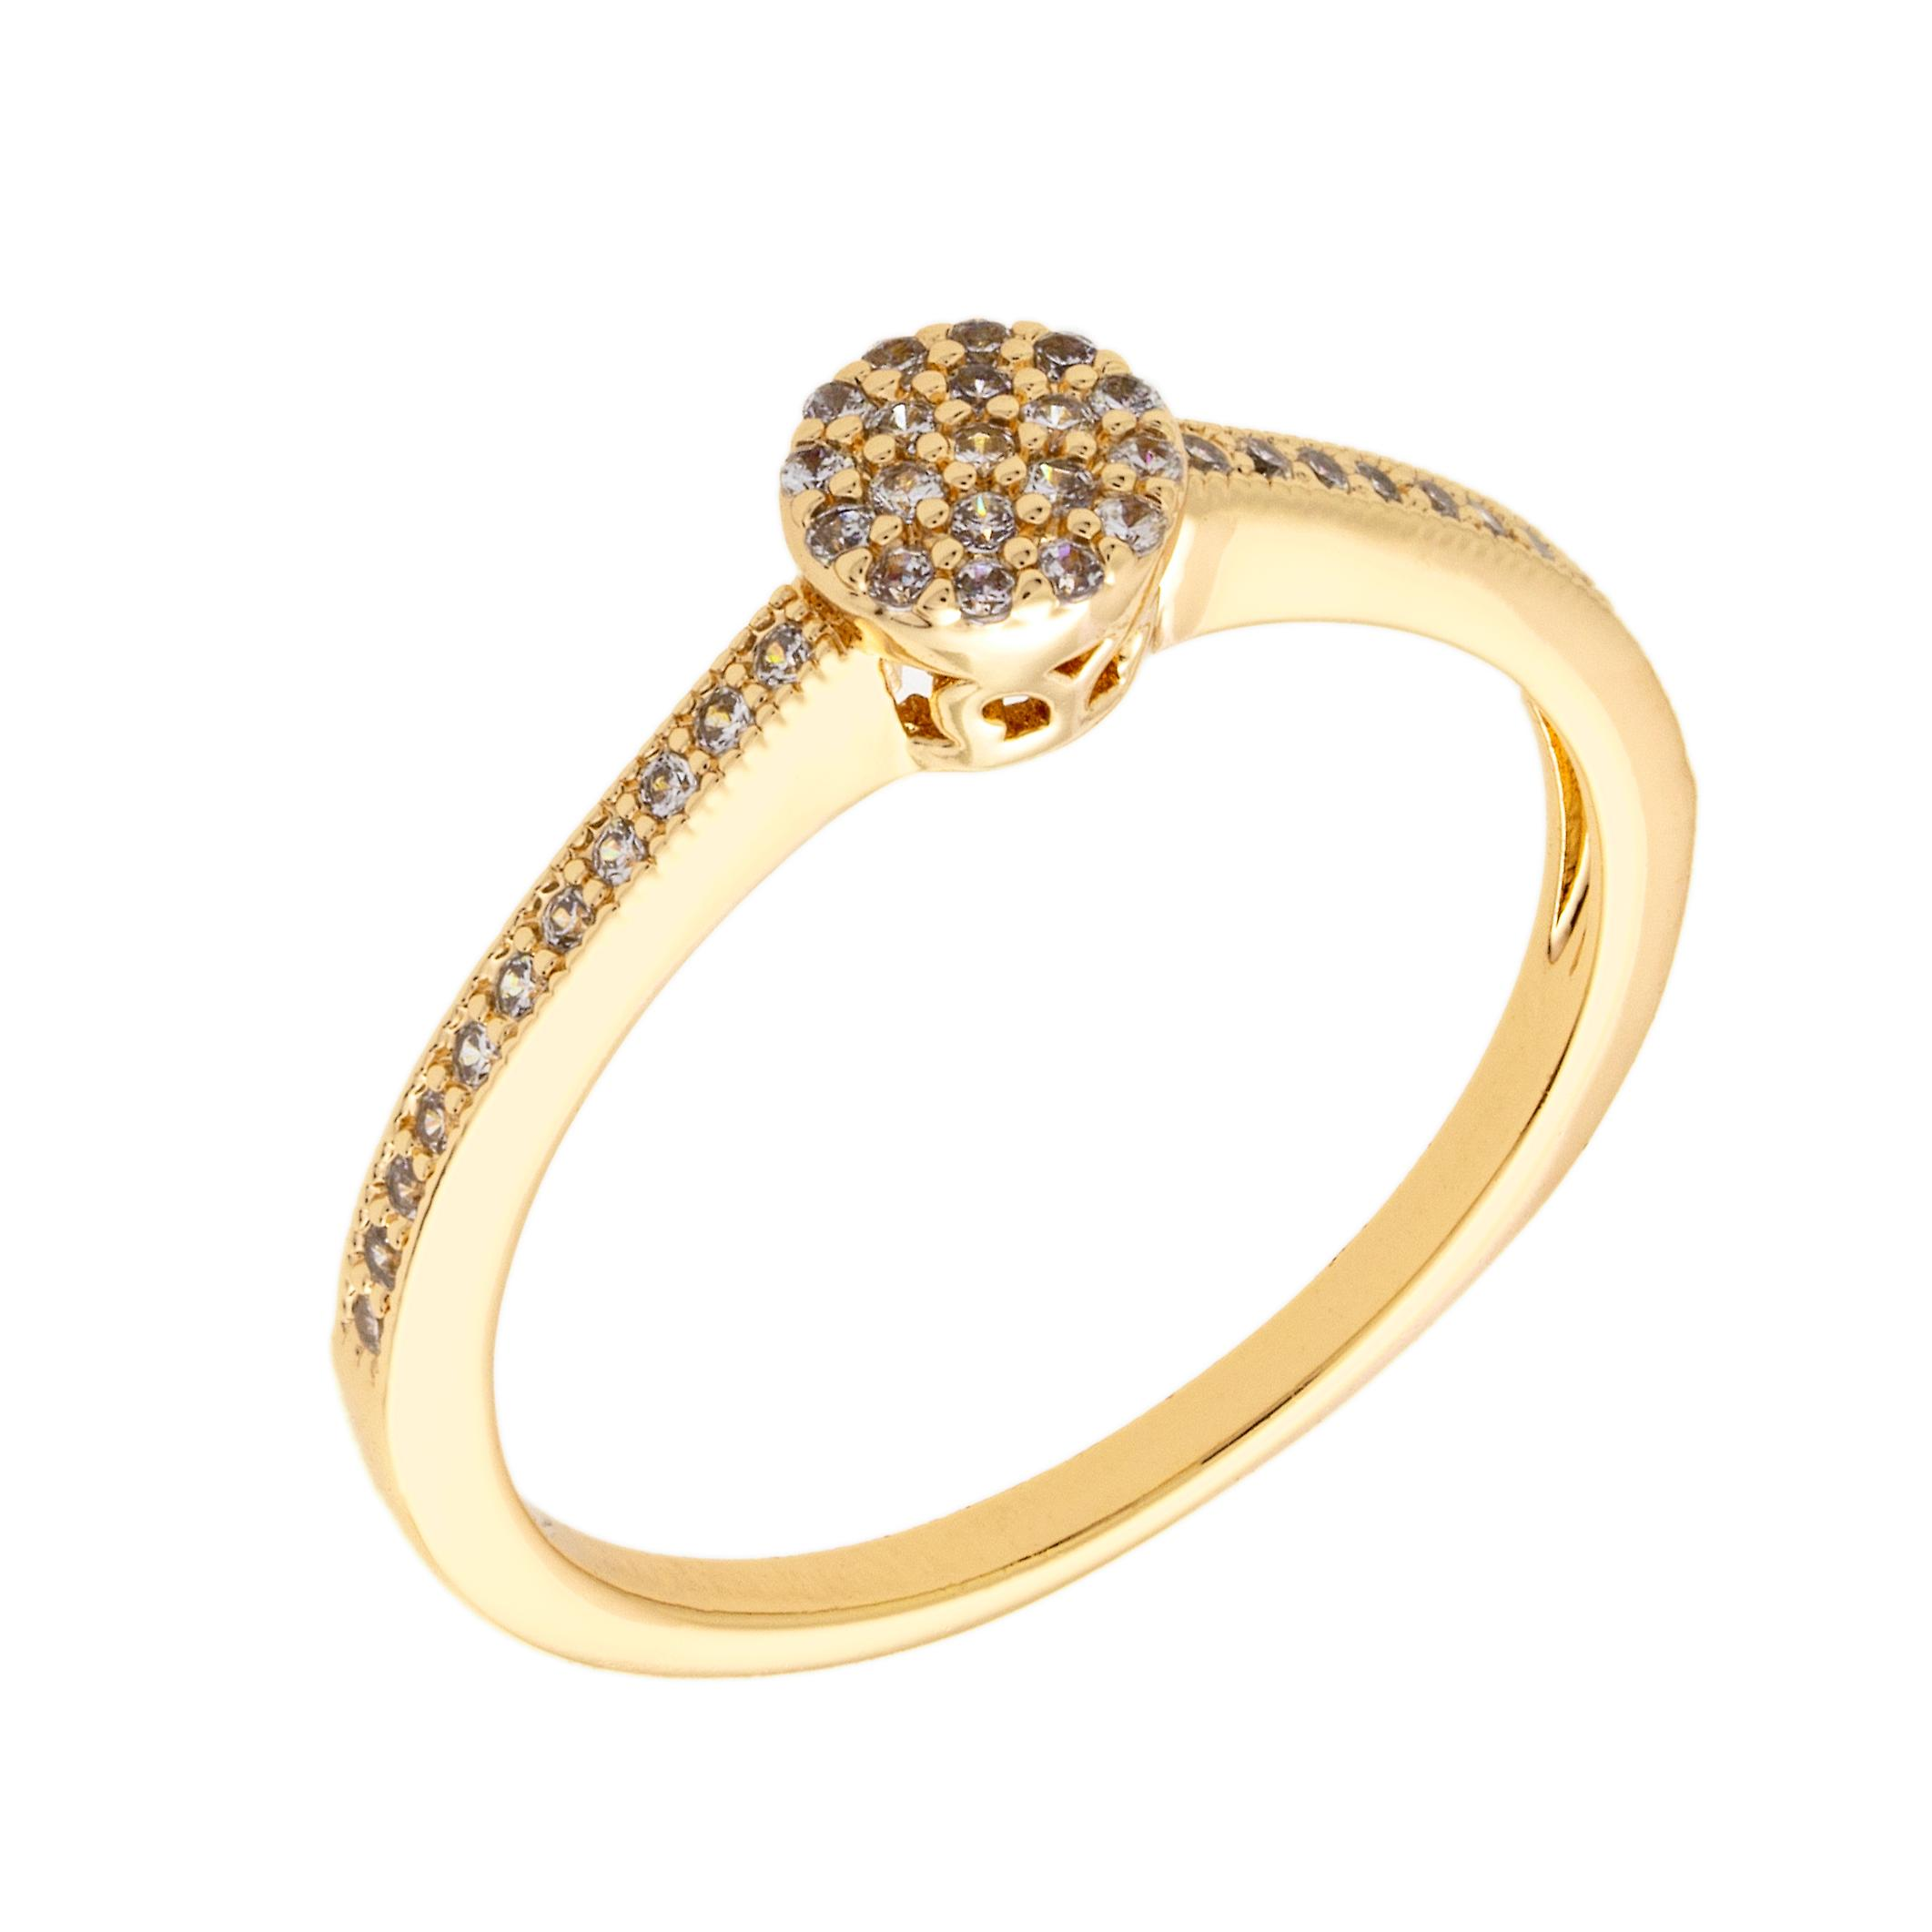 Bertha Sophia Collection Women's 18k YG Plated Stackable Pave Fashion Ring Size 6